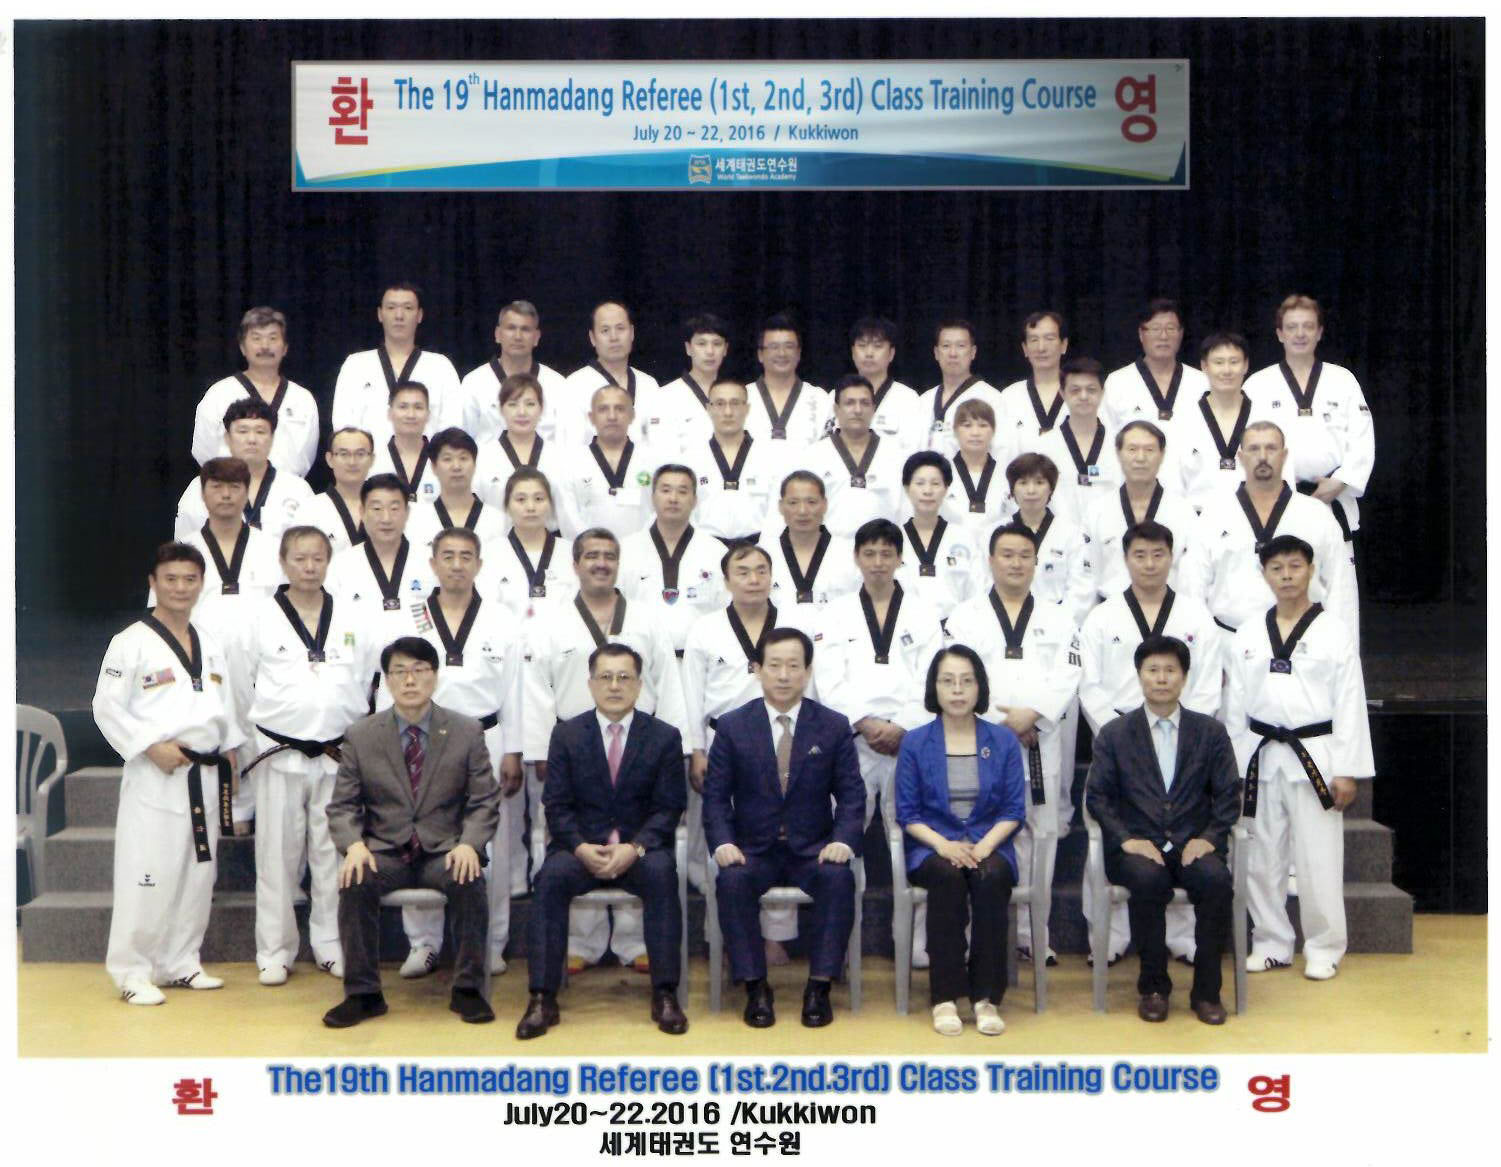 The 19th Hanmadang Referee Class Training Course July20~22.jpg